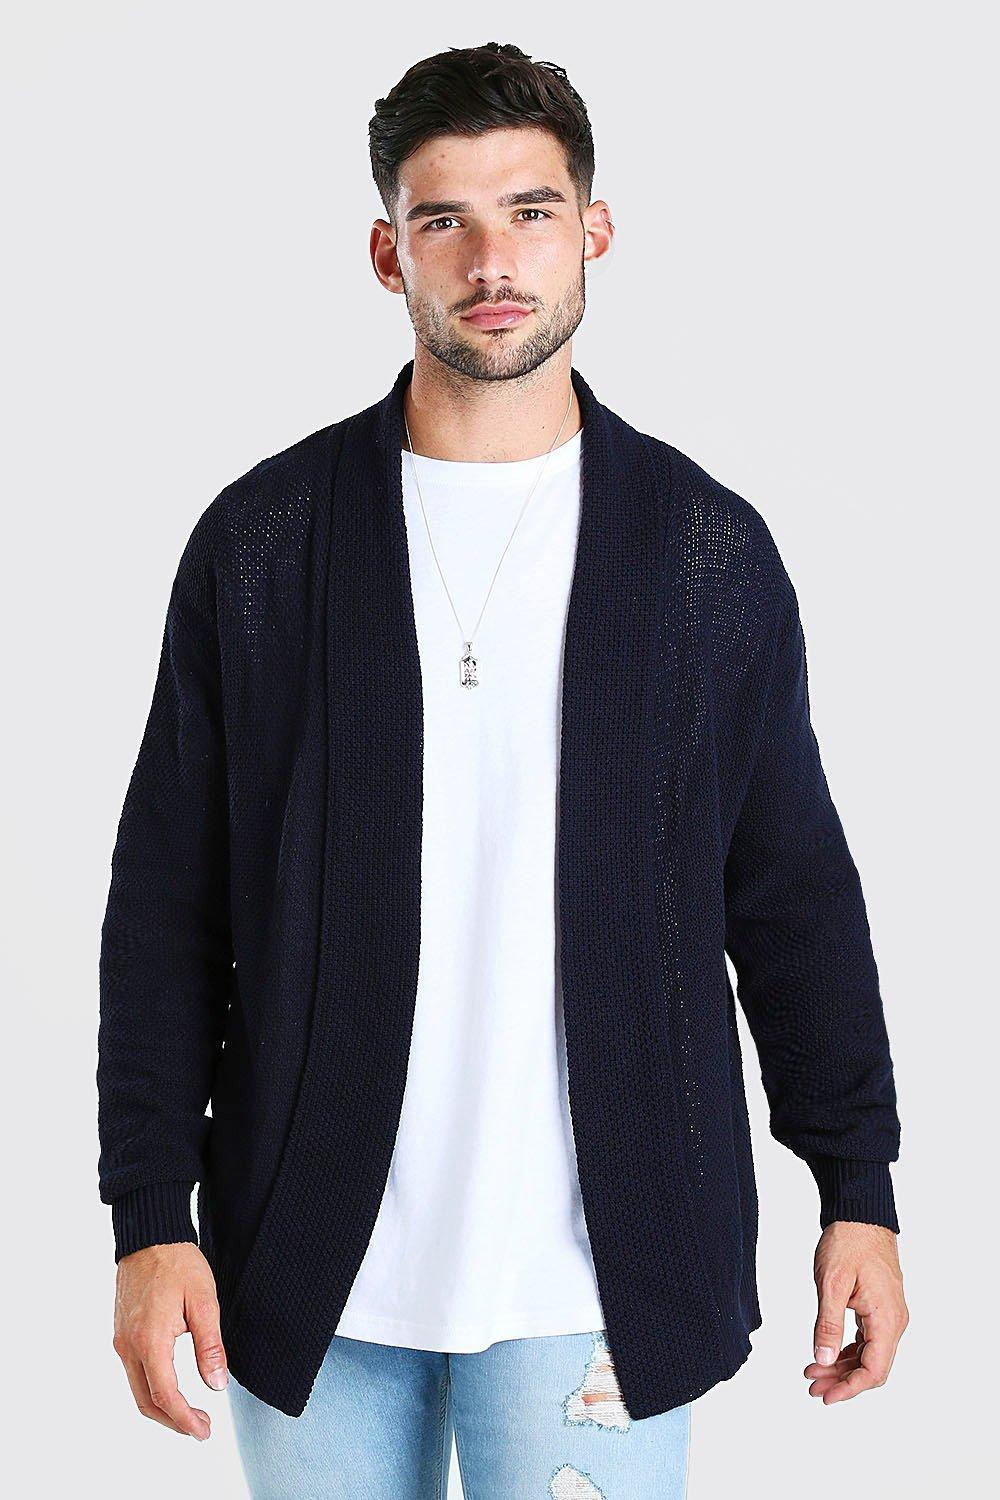 Shop online for Men's Cardigan Sweaters & Jackets at mundo-halflife.tk Find zip-front & button styles. Free Shipping. Free Returns. All the time.